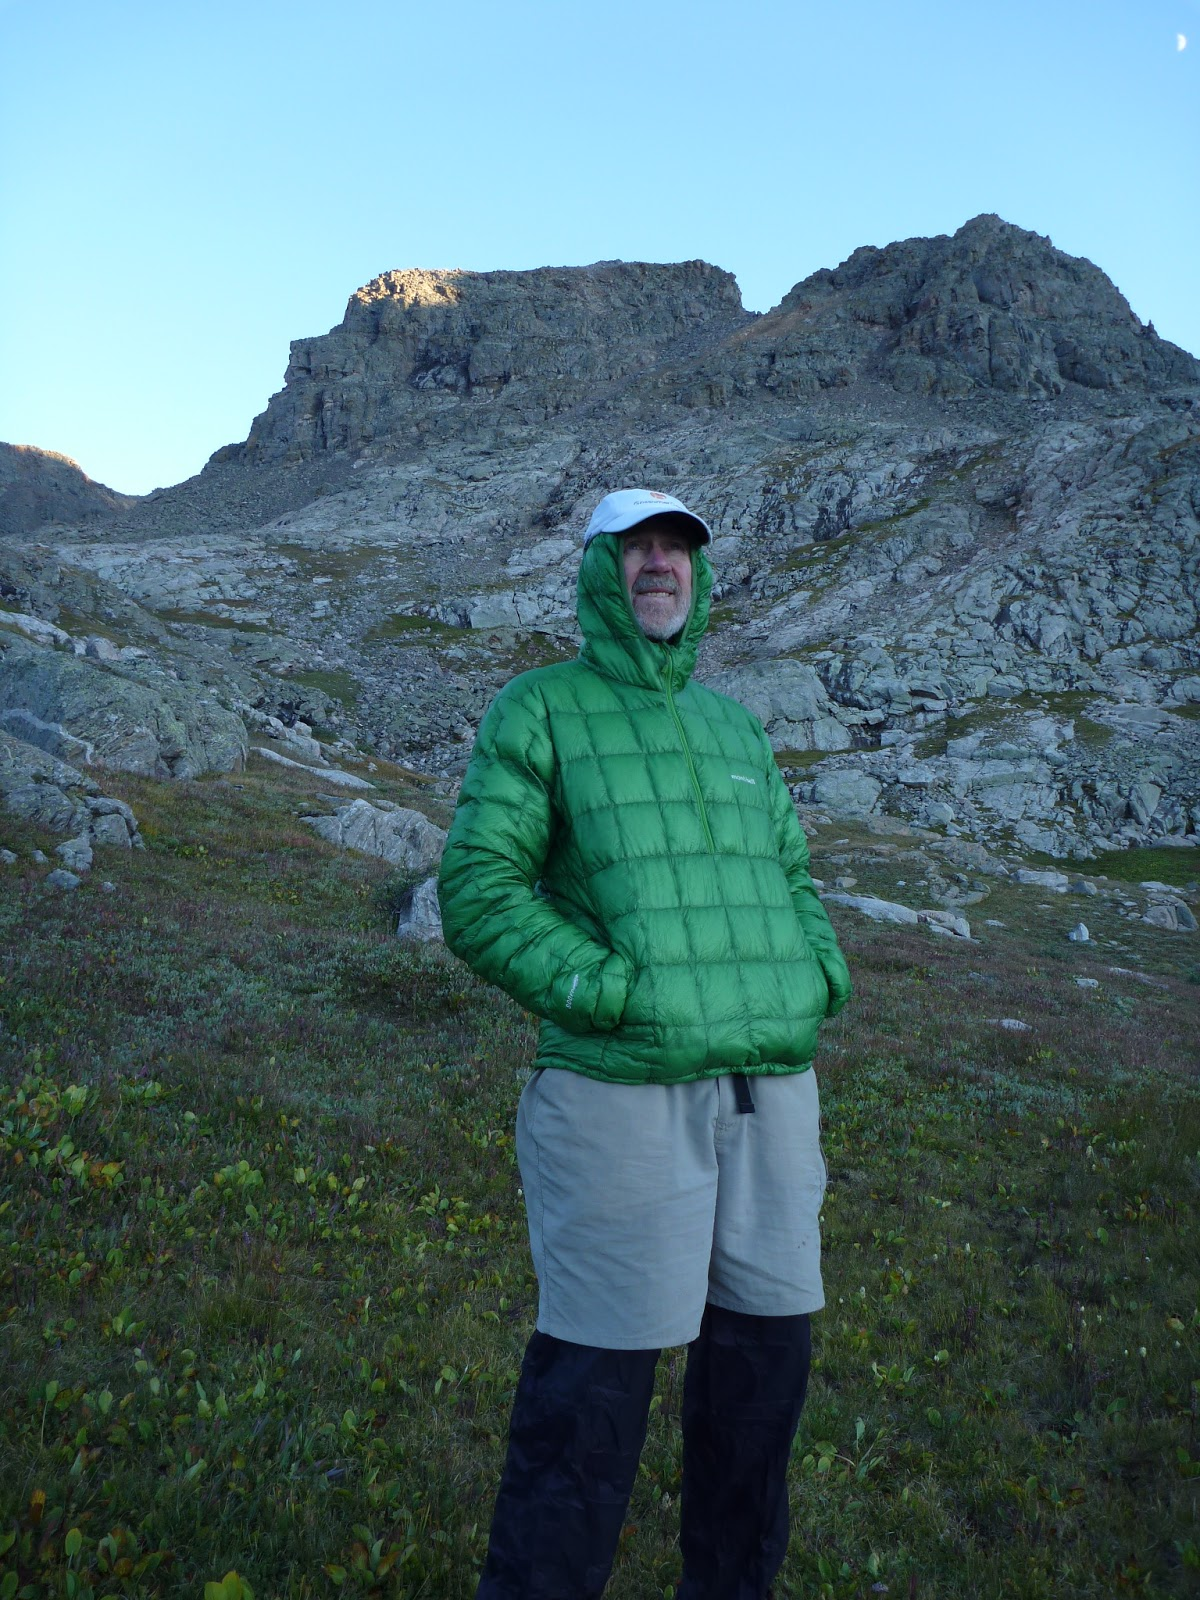 e4cb0f39921 I tested the Ex Light Down Anorak on eight backpacking trips in the  southern Colorado Mountains and Utah Canyonlands. My camp clothing system  includes ...